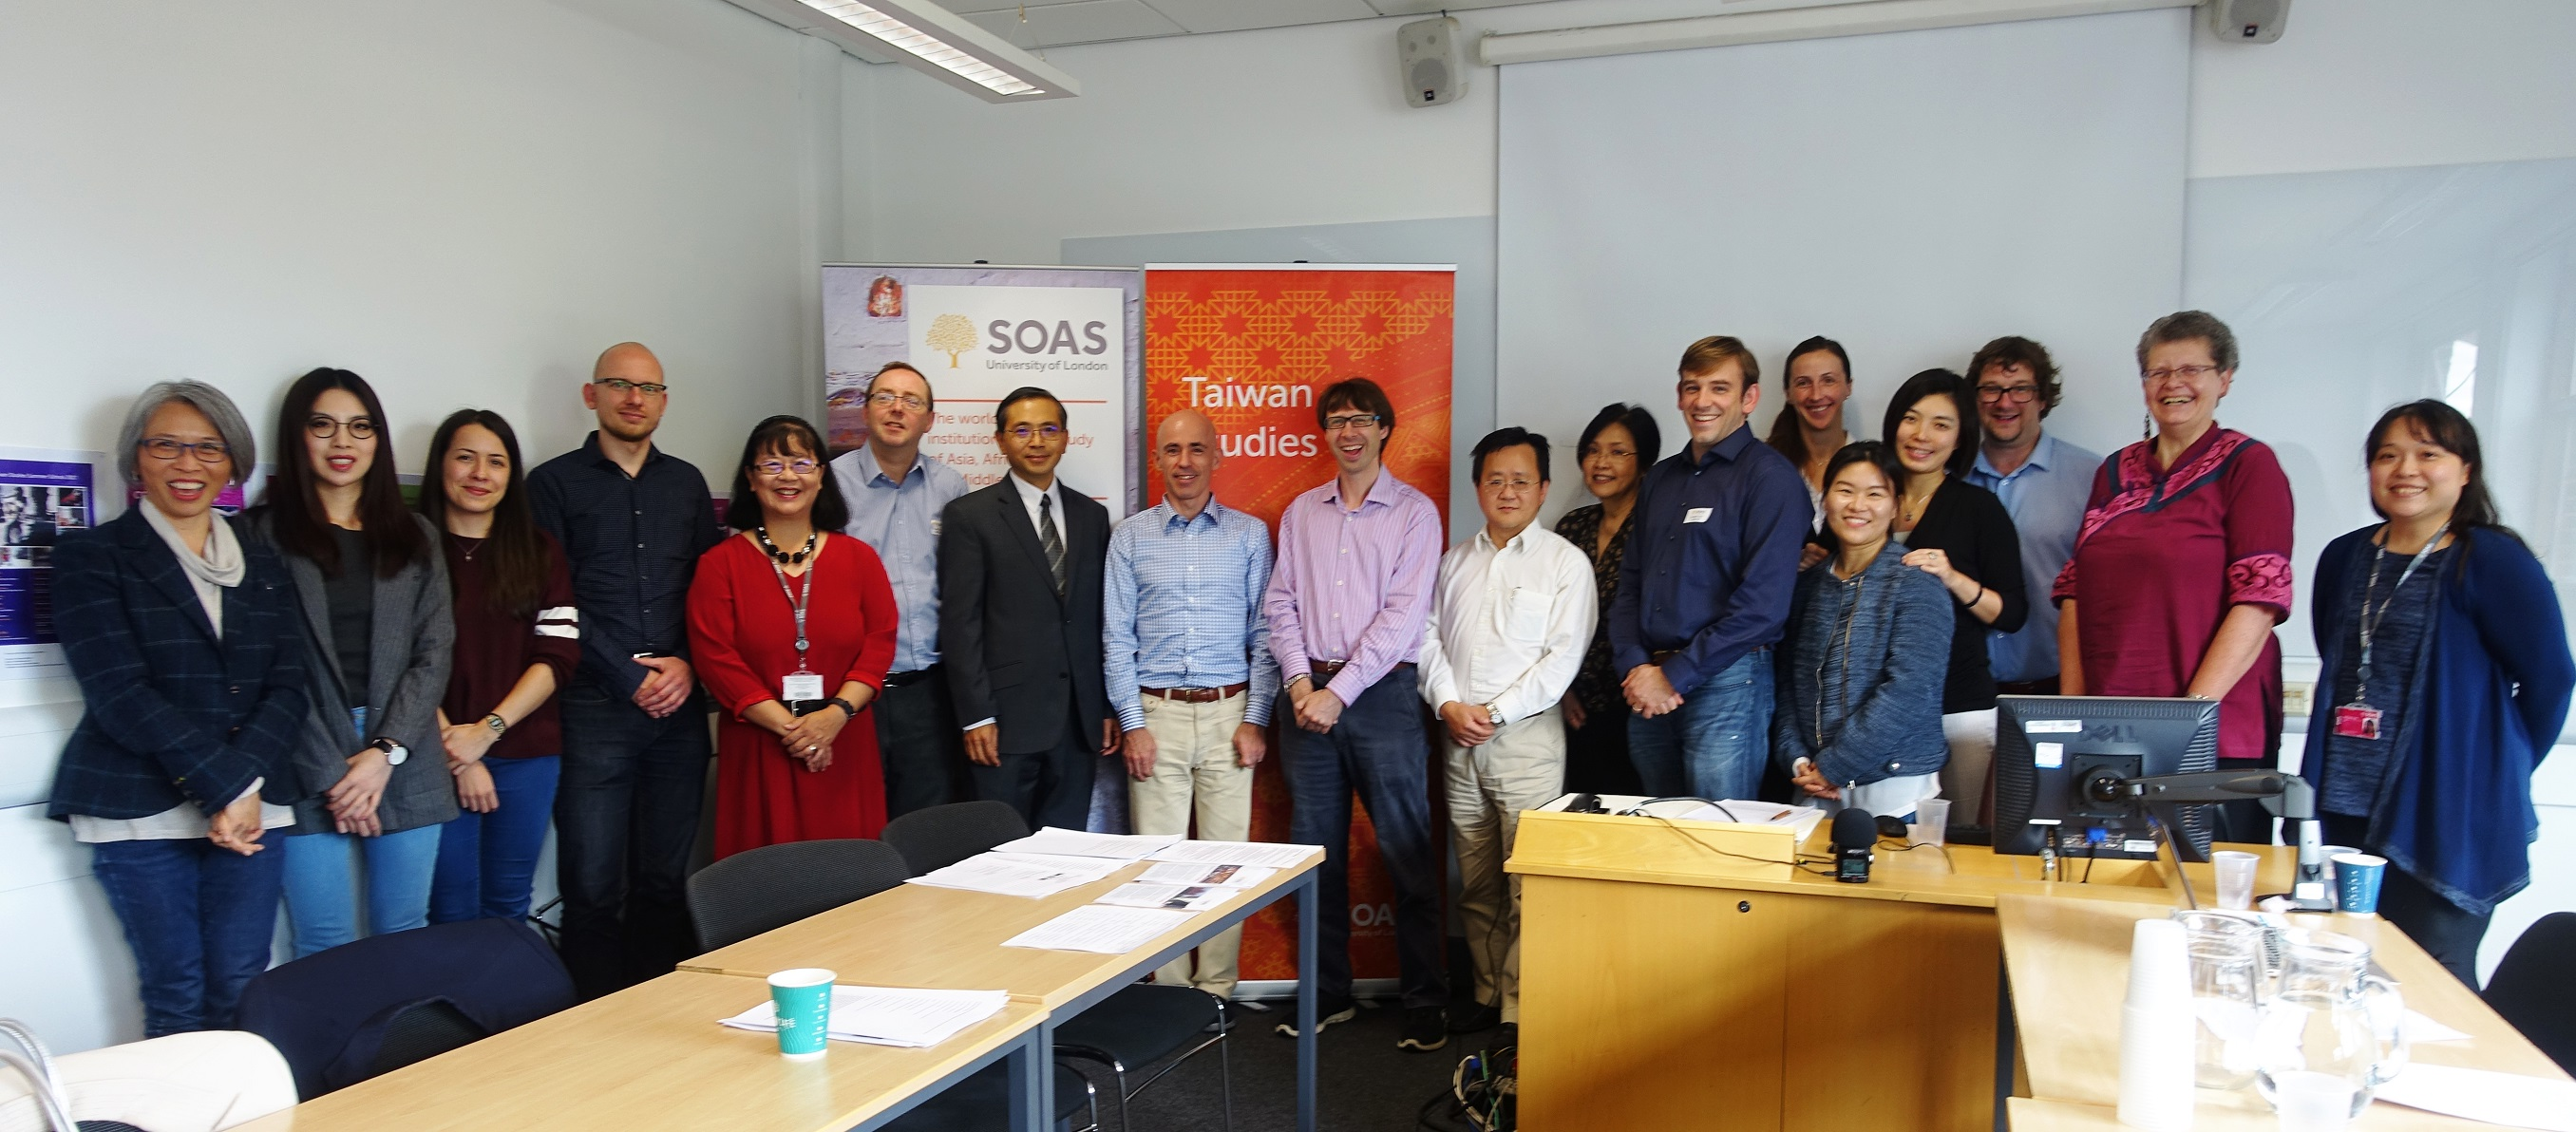 Participants from the world's leading Taiwan Studies programmes in Europe and North America